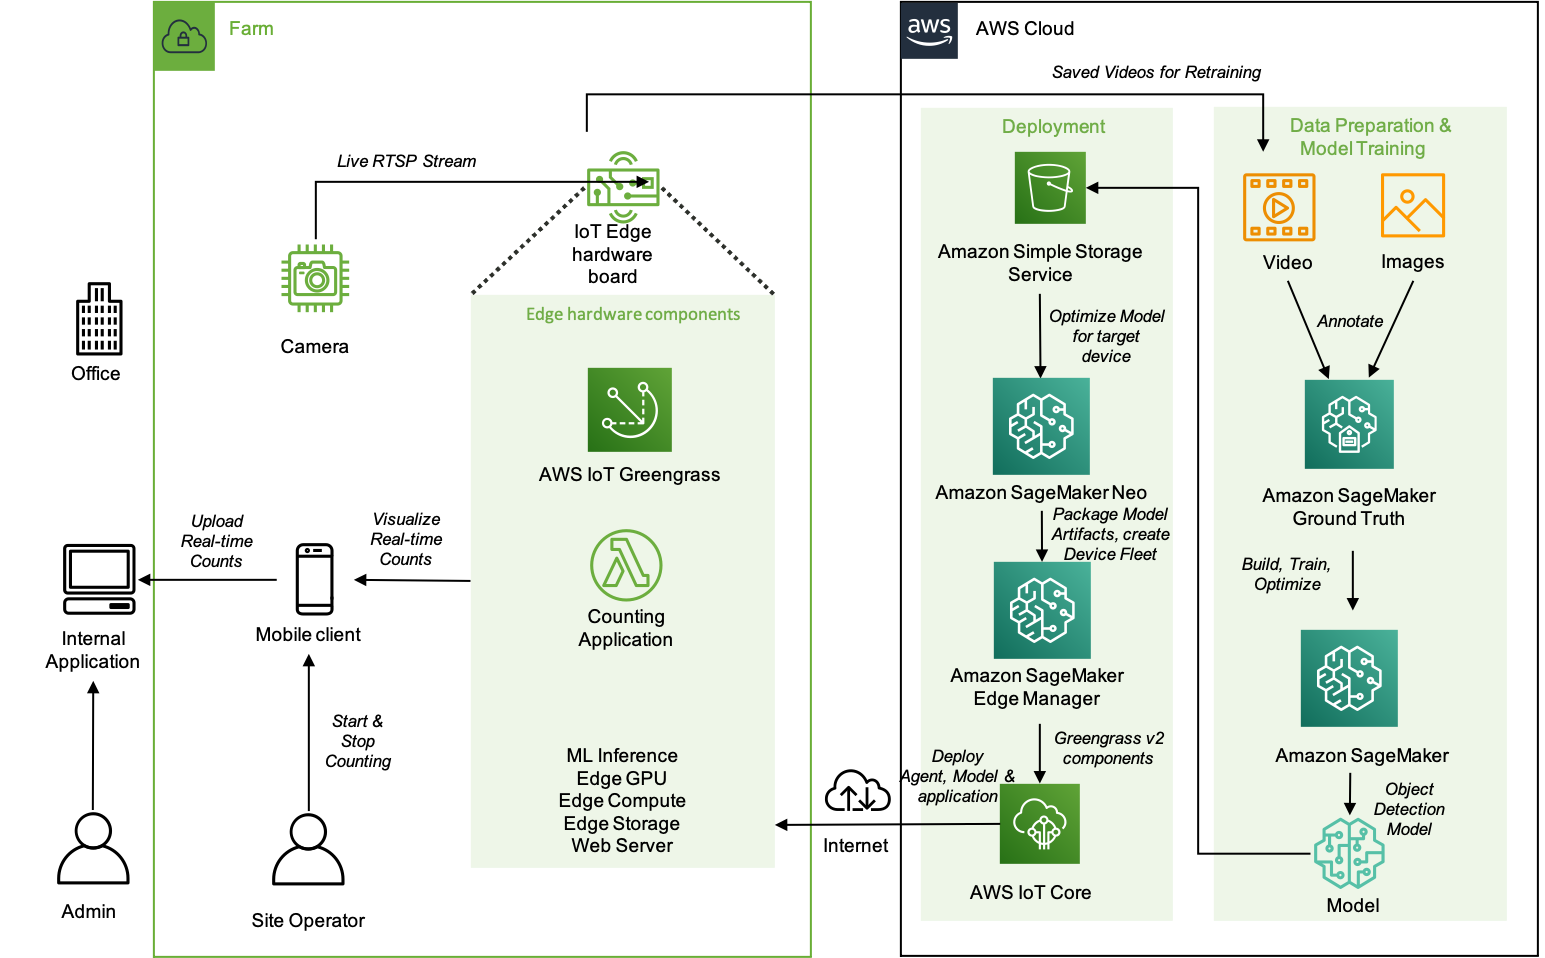 Build machine learning at the edge applications using Amazon SageMaker Edge Manager and AWS IoT Greengrass V2